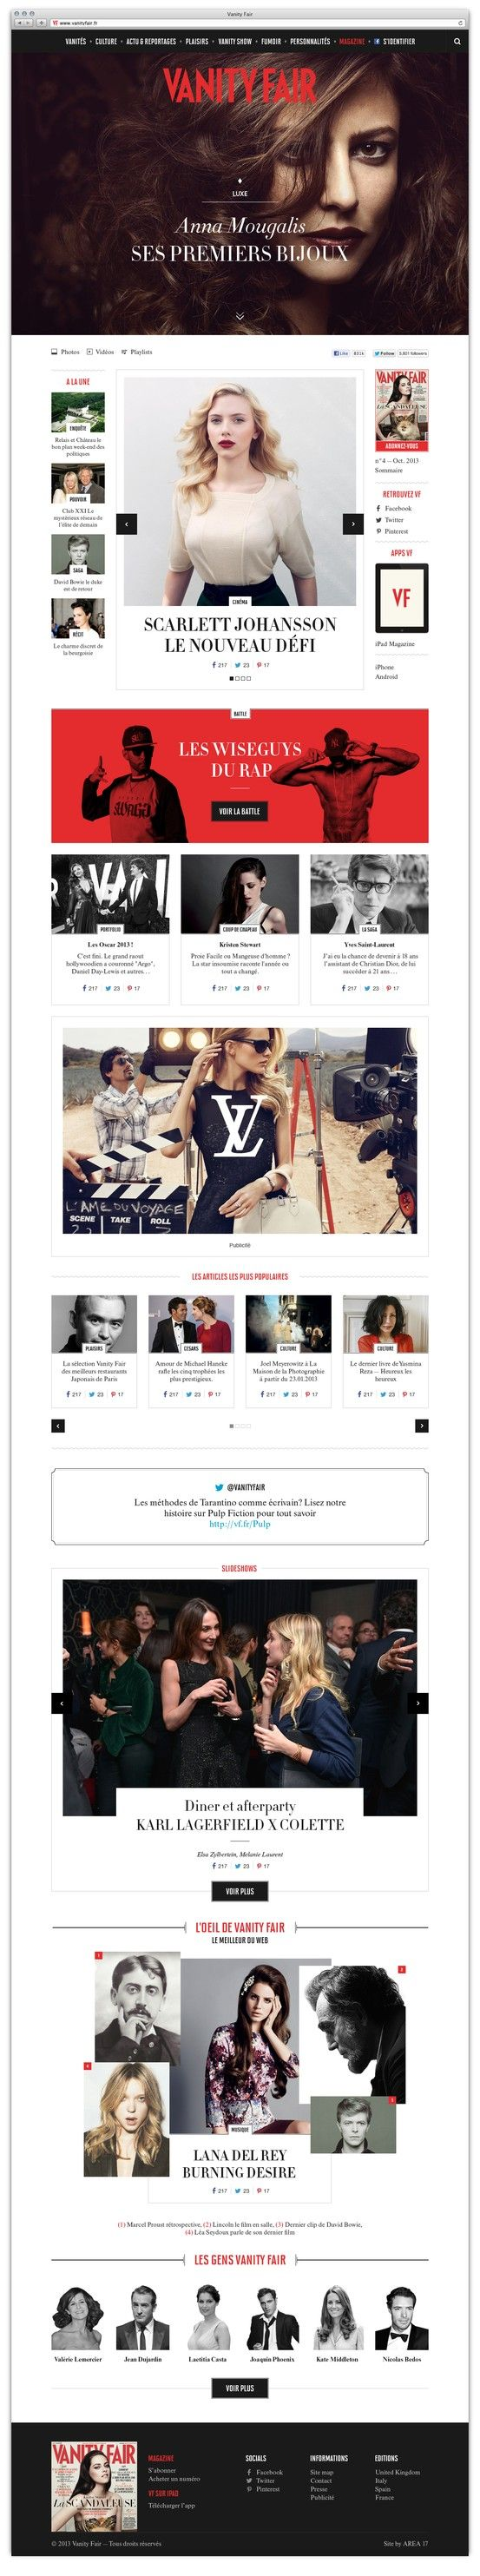 There's nothing quite as timeless as Vanity Fair's mixed typography. We love the chic sophistication it brings to their website design. #webdesign #typography